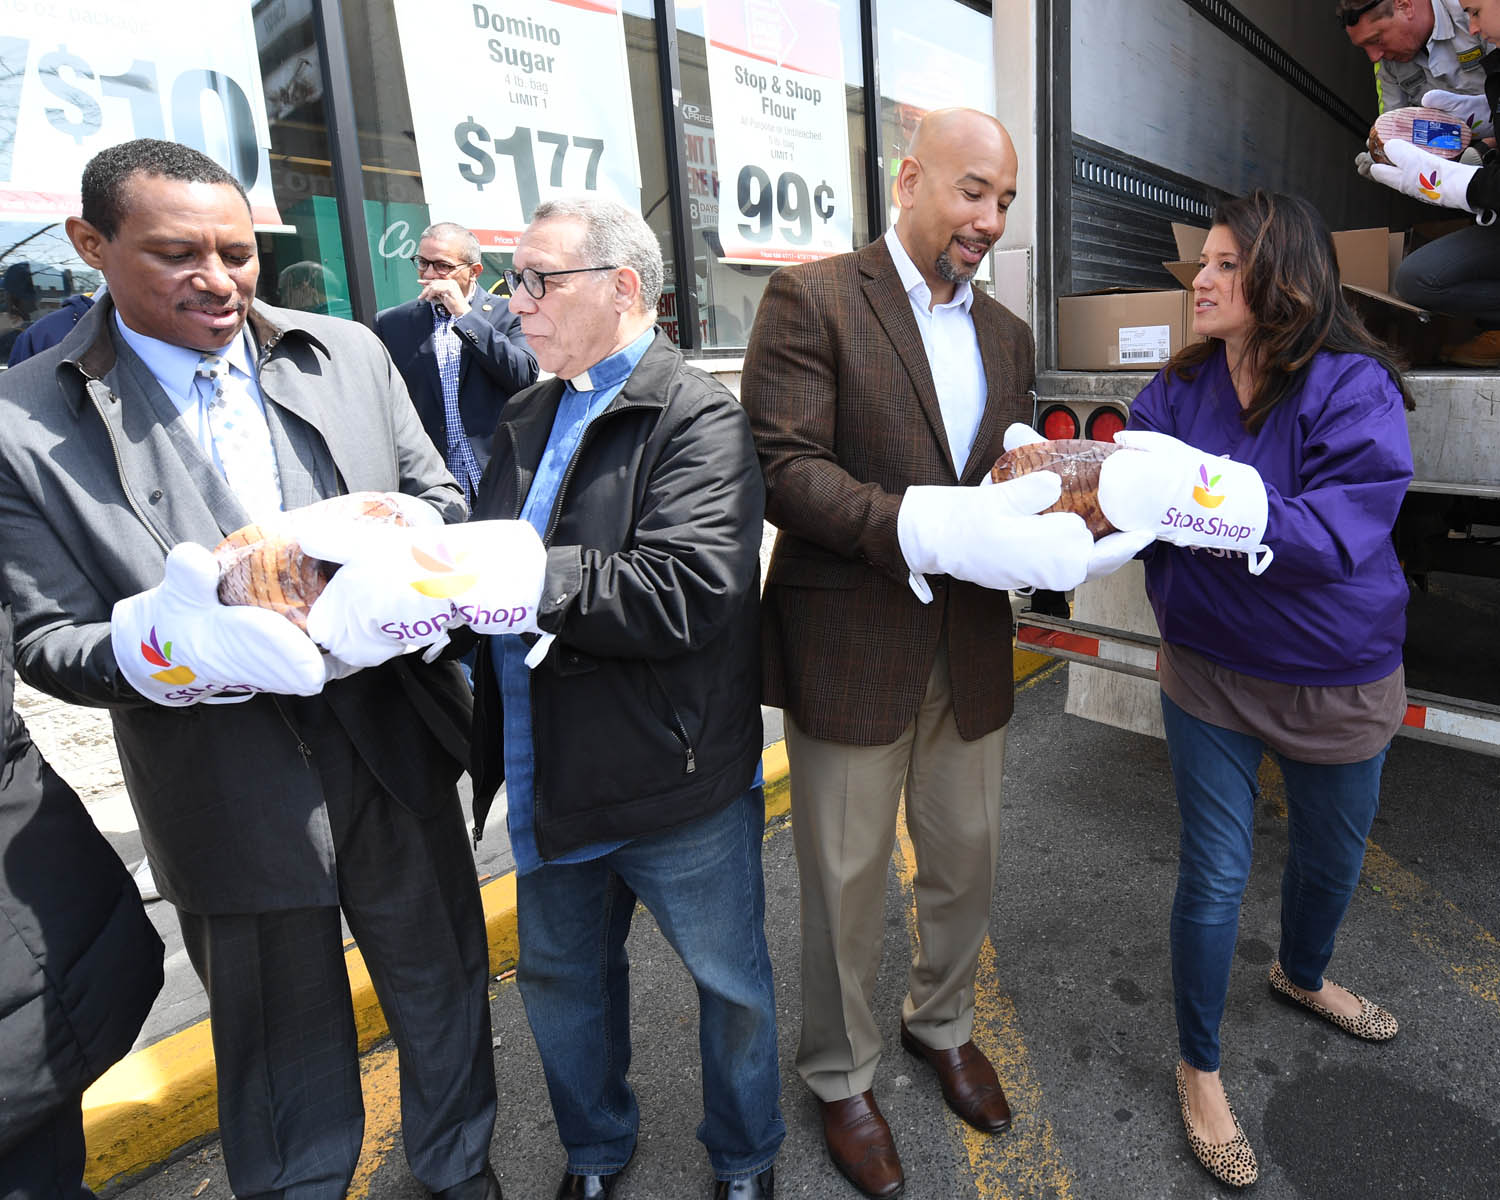 BX Hams-Unload 1 (L.-R.) Rev. Malobe Sampson of Thessalonia Church; Bishop Angelo Rosario of the Bronx Clergy Task Force; Bronx Borough President Ruben Diaz Jr.; and Cindy Carrasquilla of Stop & Shop Metro NY pass Easter hams hand-to-hand in the parking lot of the E. 174th supermarket in the Bronx on April 13. The supermarket donated 1,000 Easter hams to five social service agencies that provide assistance to Bronxites in need. (Credit: Stop & Shop)